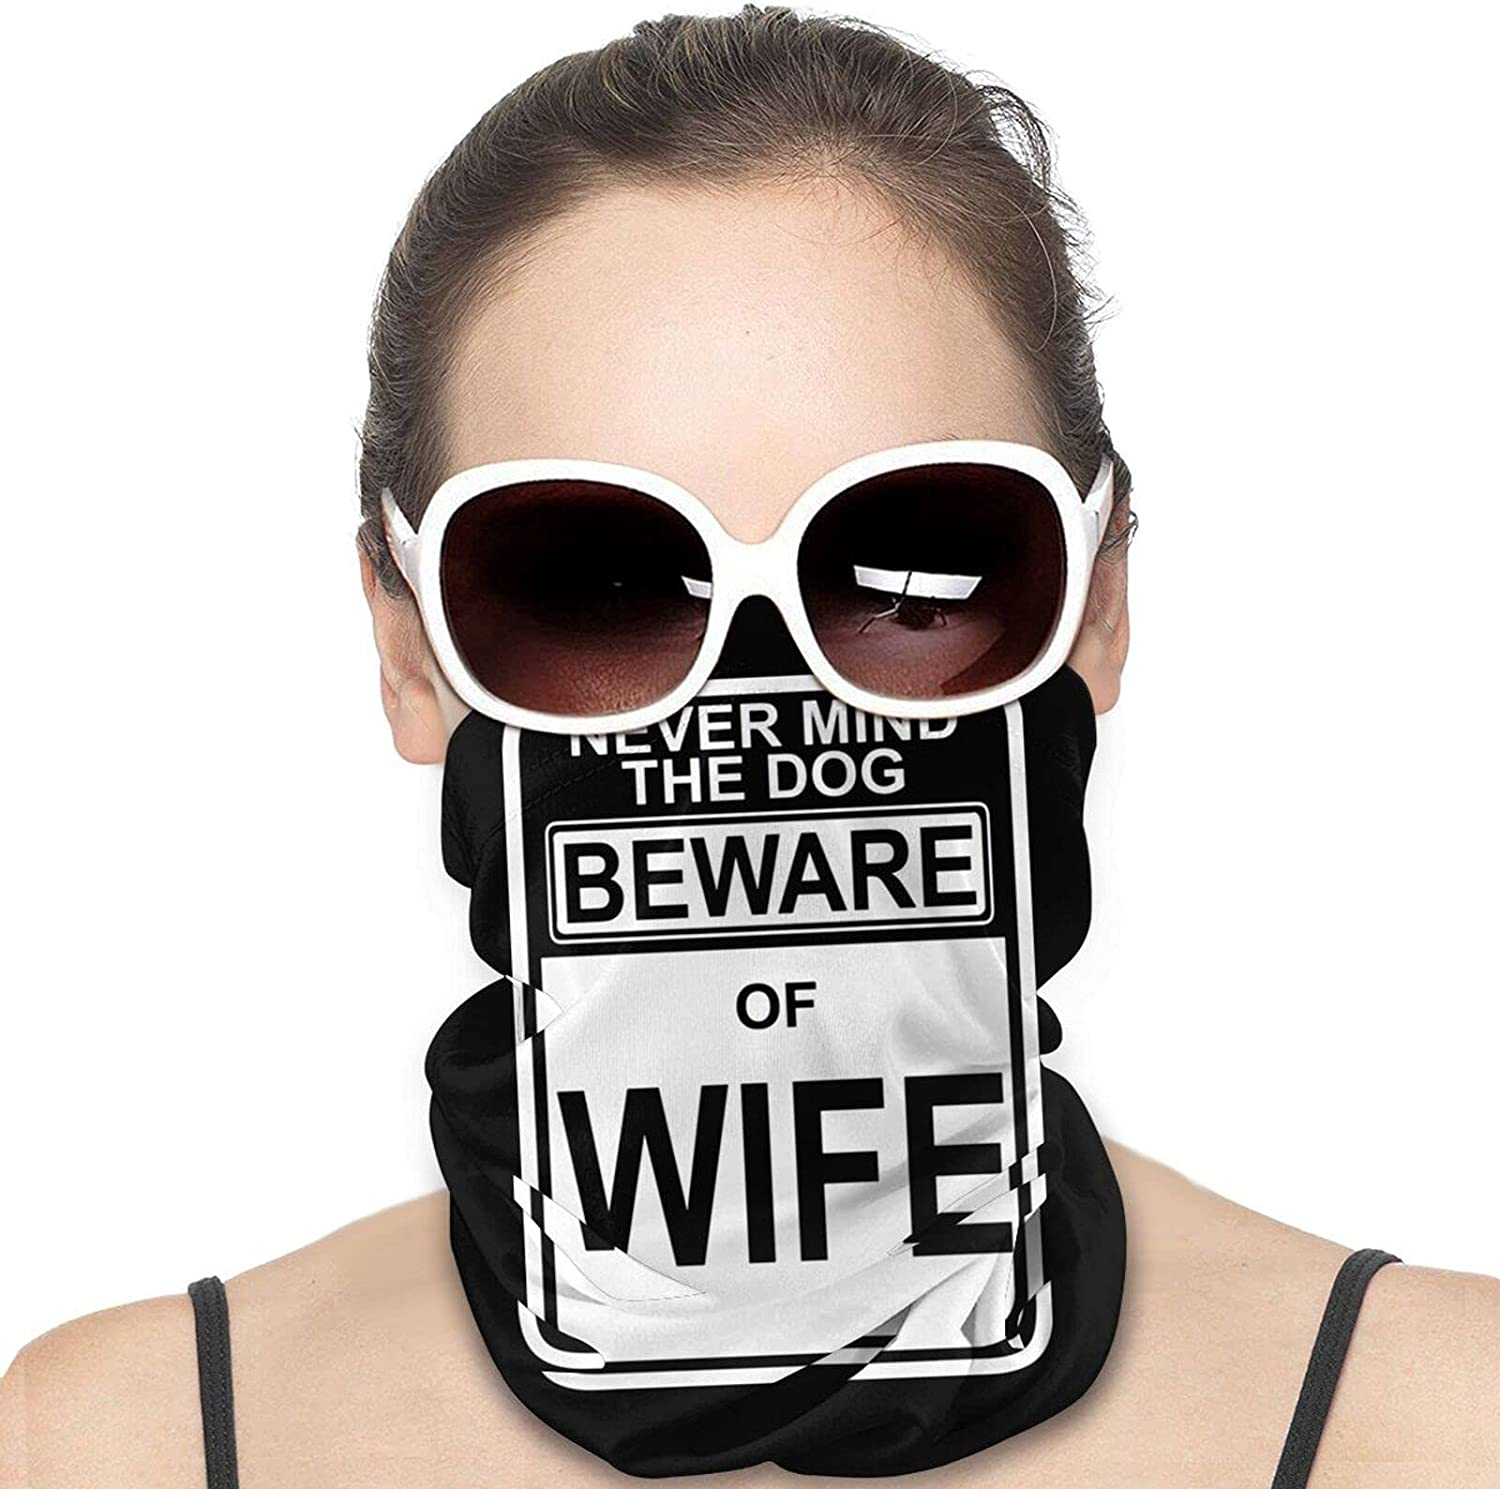 Beware of Wife Forget The Dog Round Neck Gaiter Bandnas Face Cover Uv Protection Prevent bask in Ice Scarf Headbands Perfect for Motorcycle Cycling Running Festival Raves Outdoors